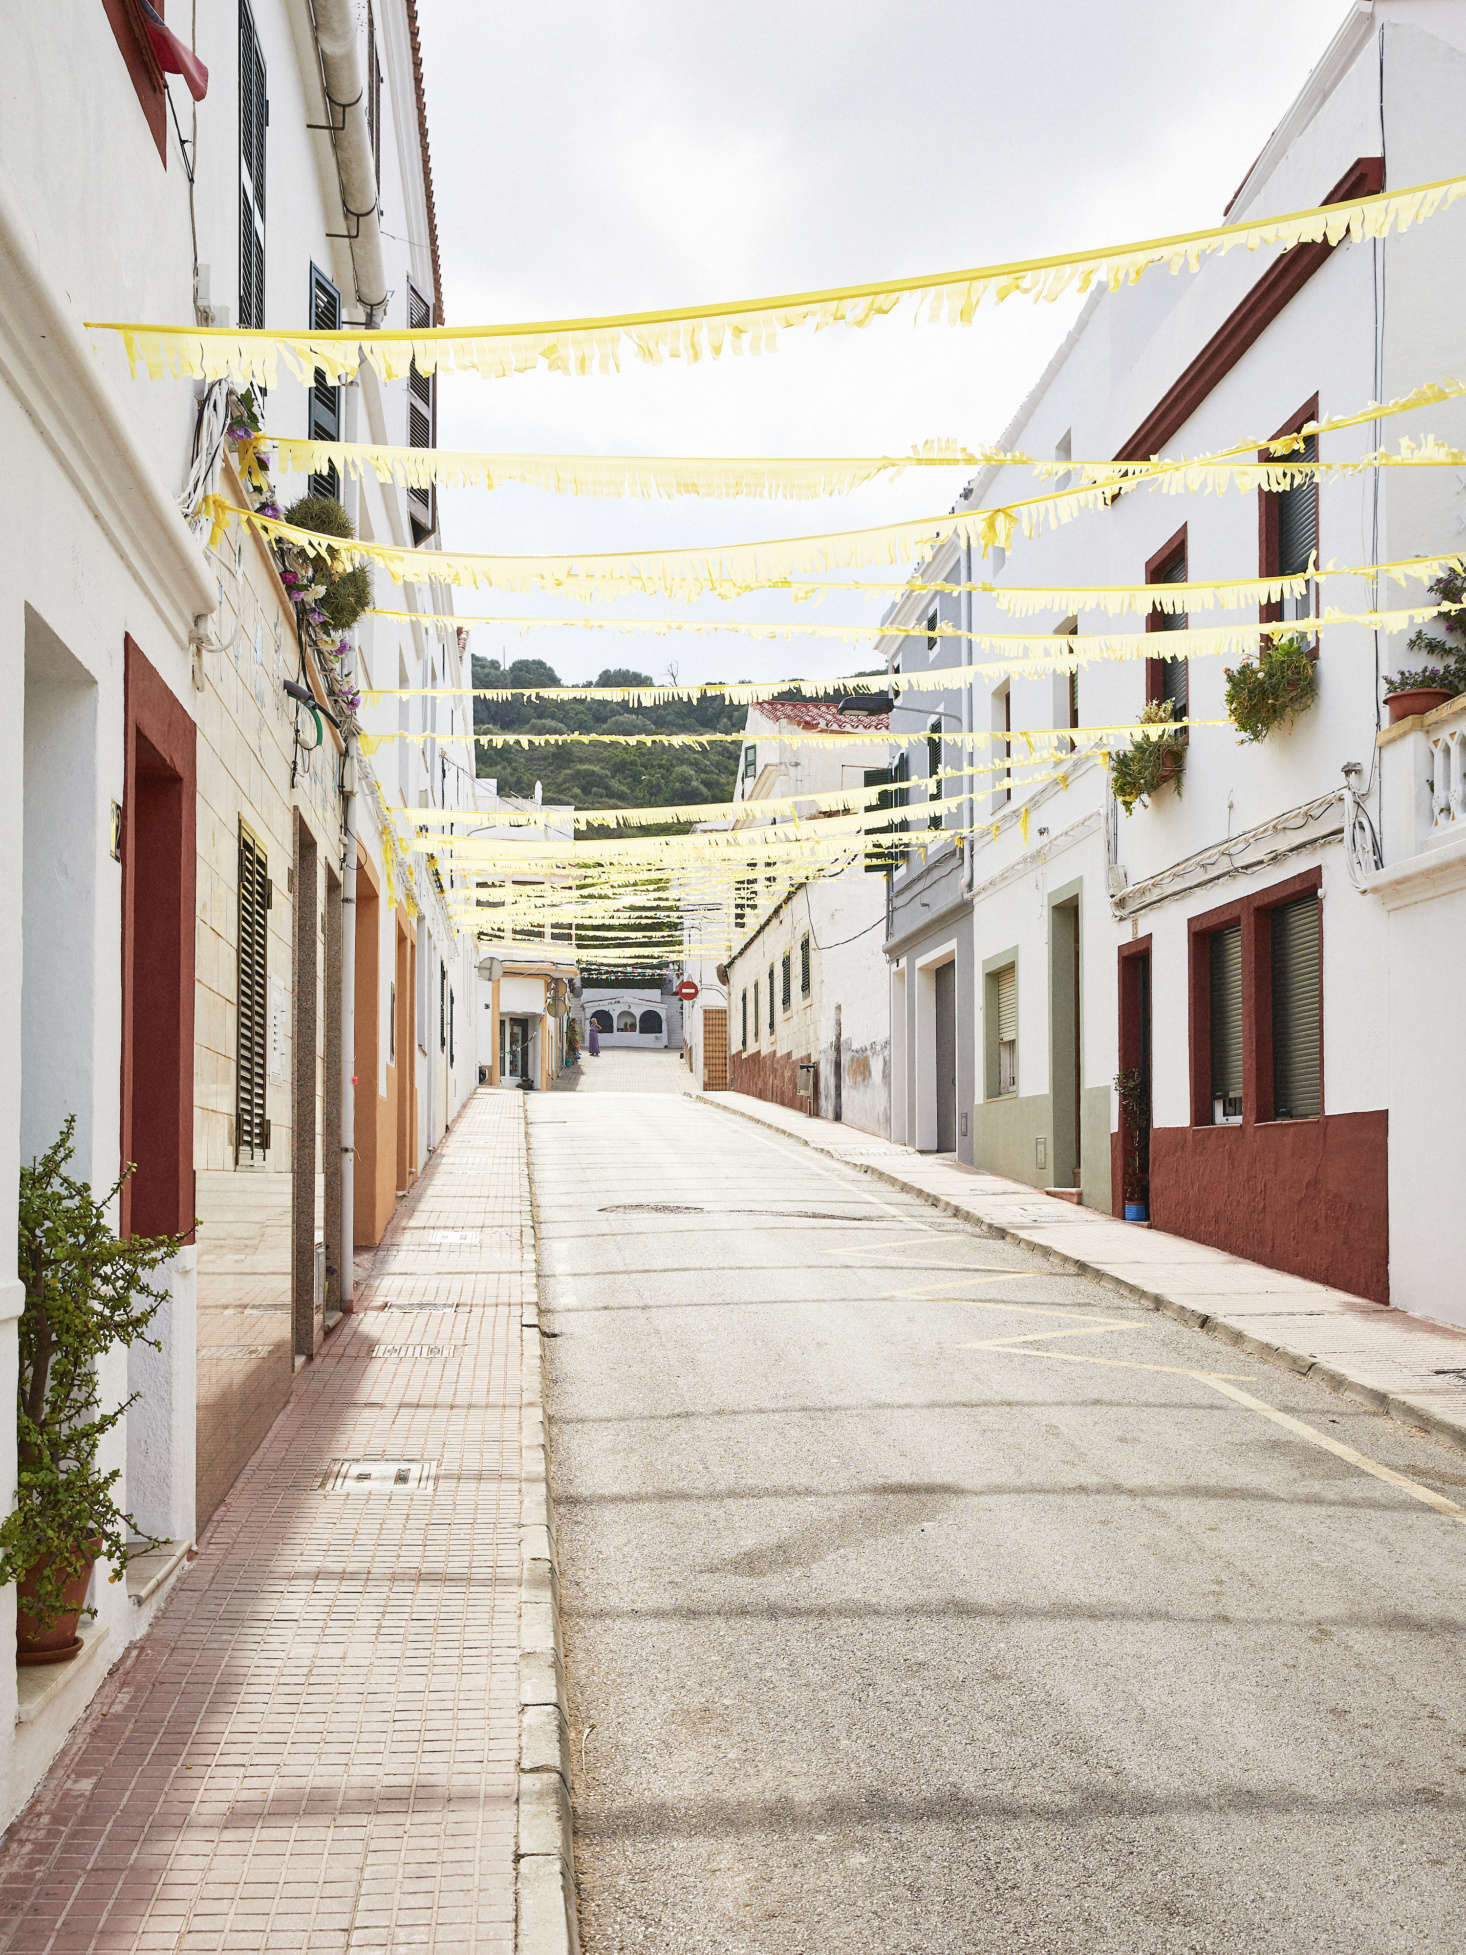 The street where Ces Sucreres is located in Ferreries, Menorca.